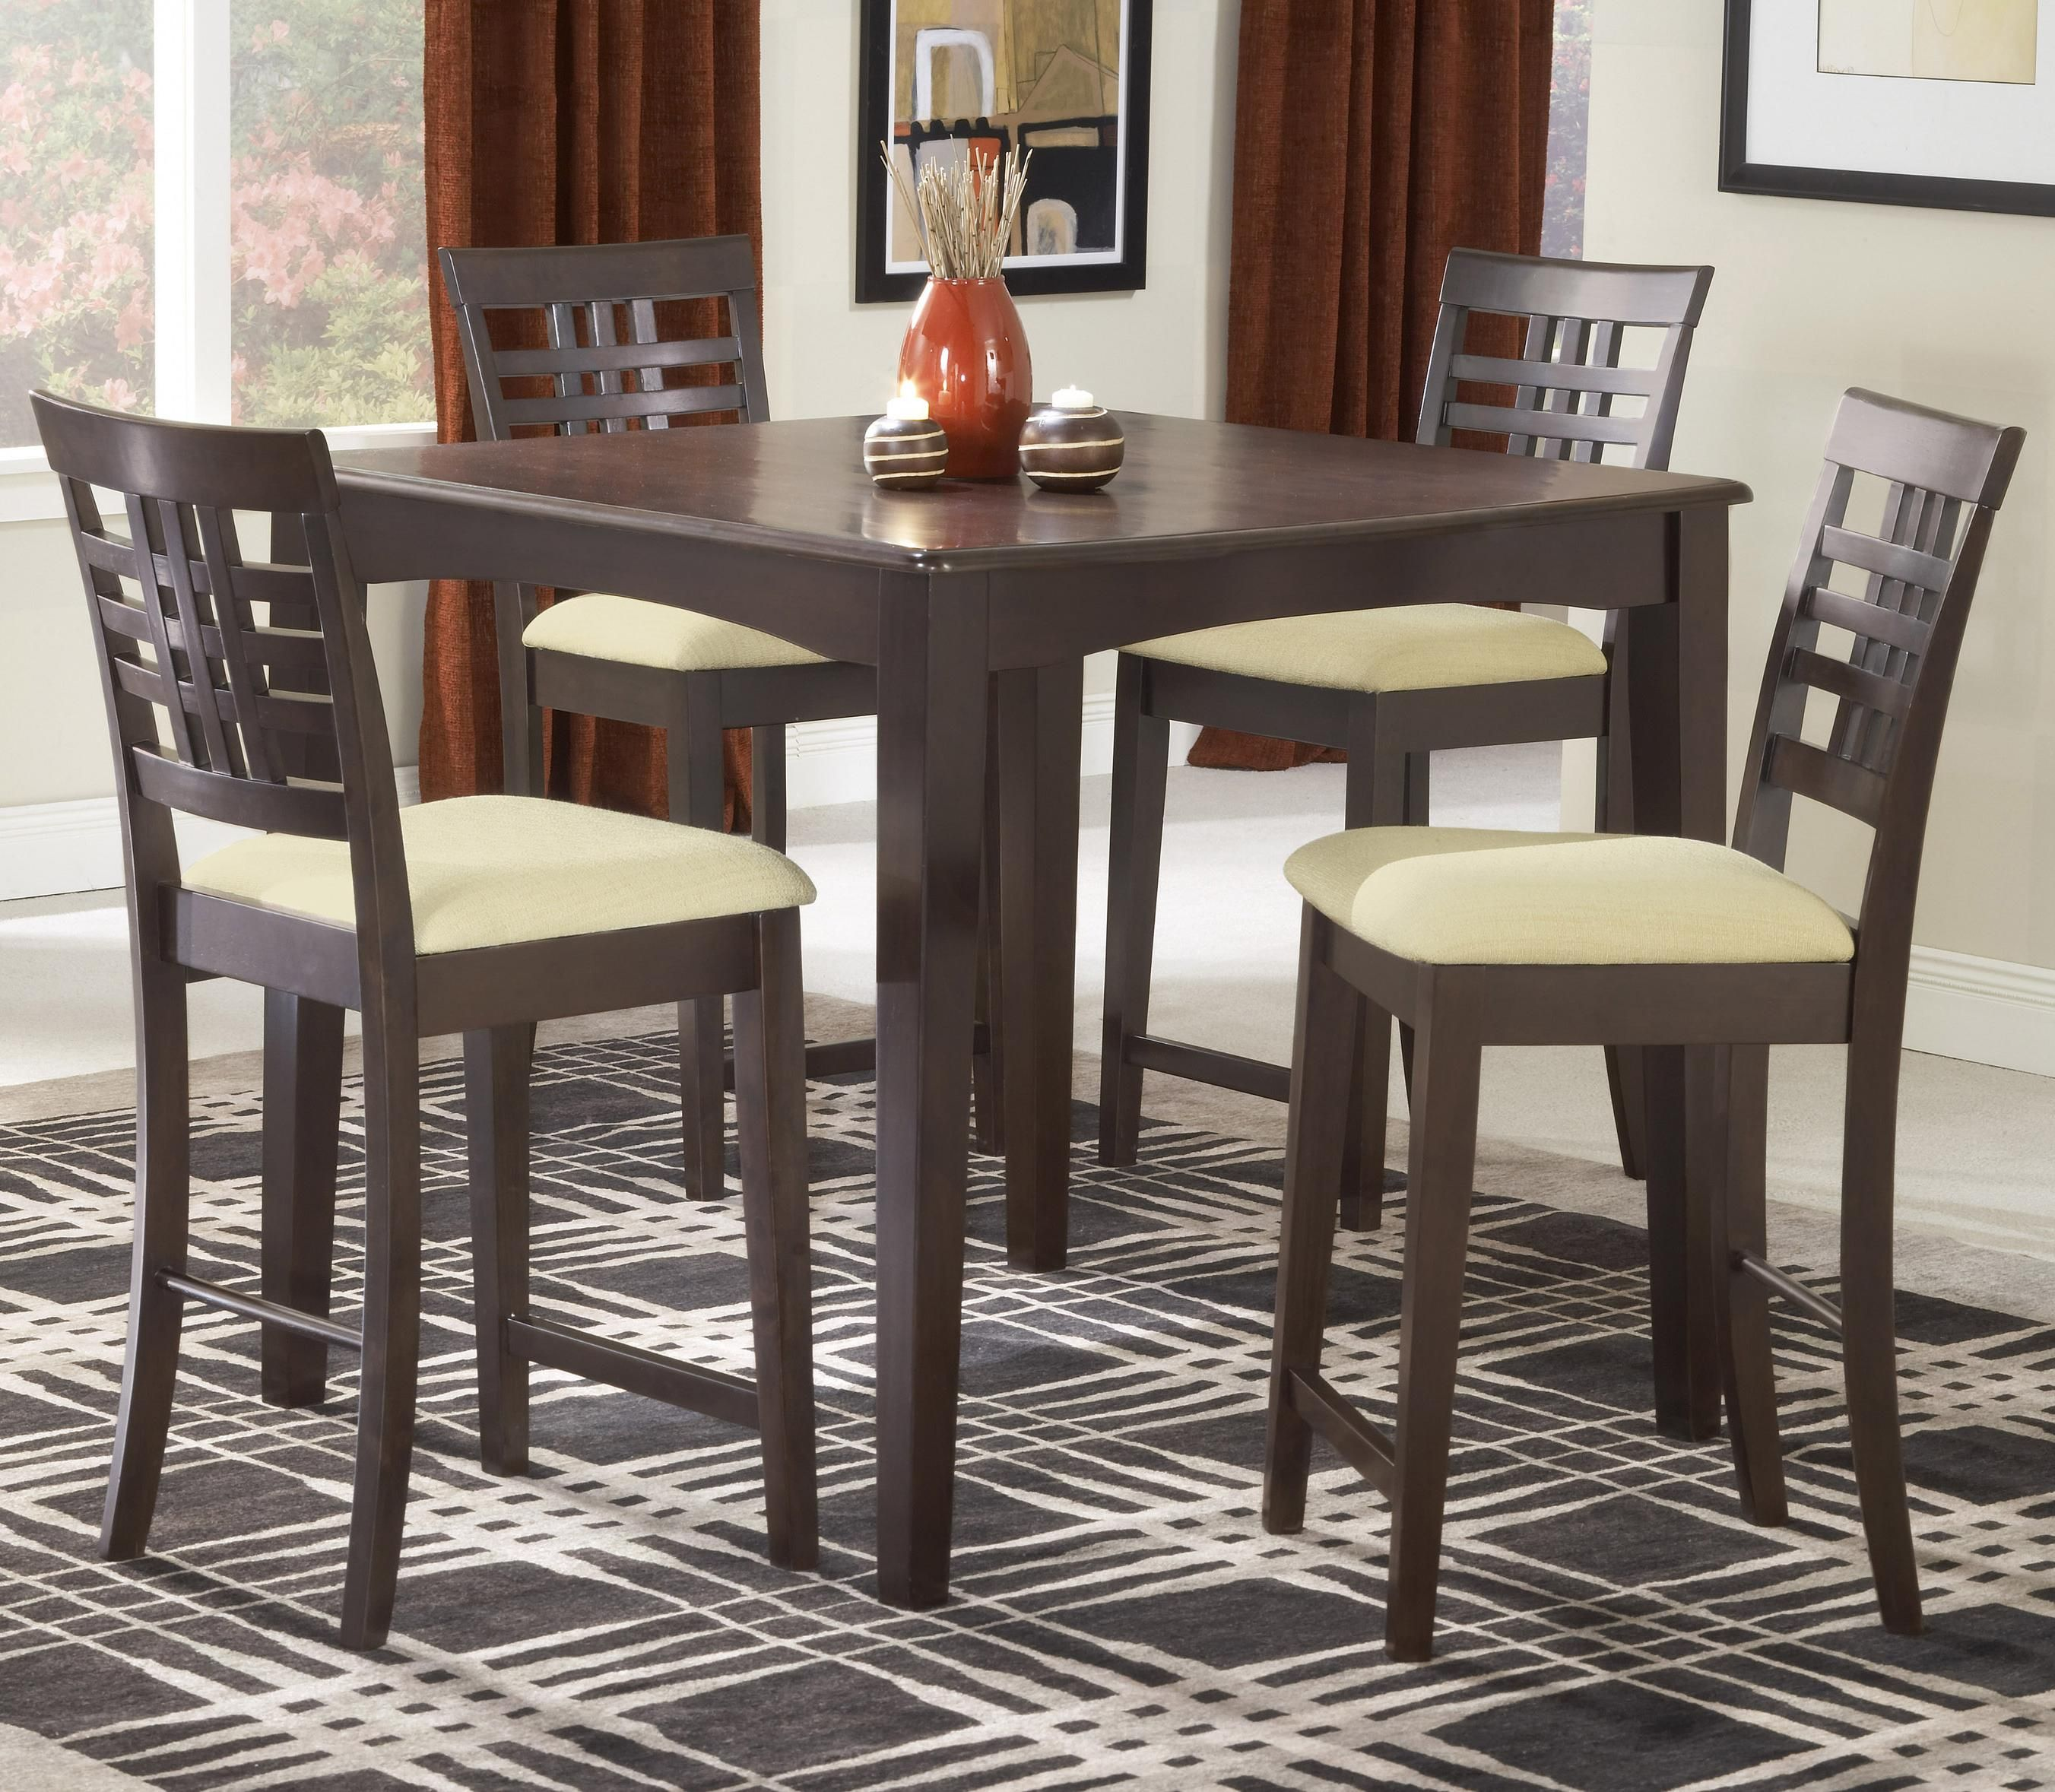 40x40x36 Dining Room Furniture Sets Counter Height Dining Table Set Dining Room Sets